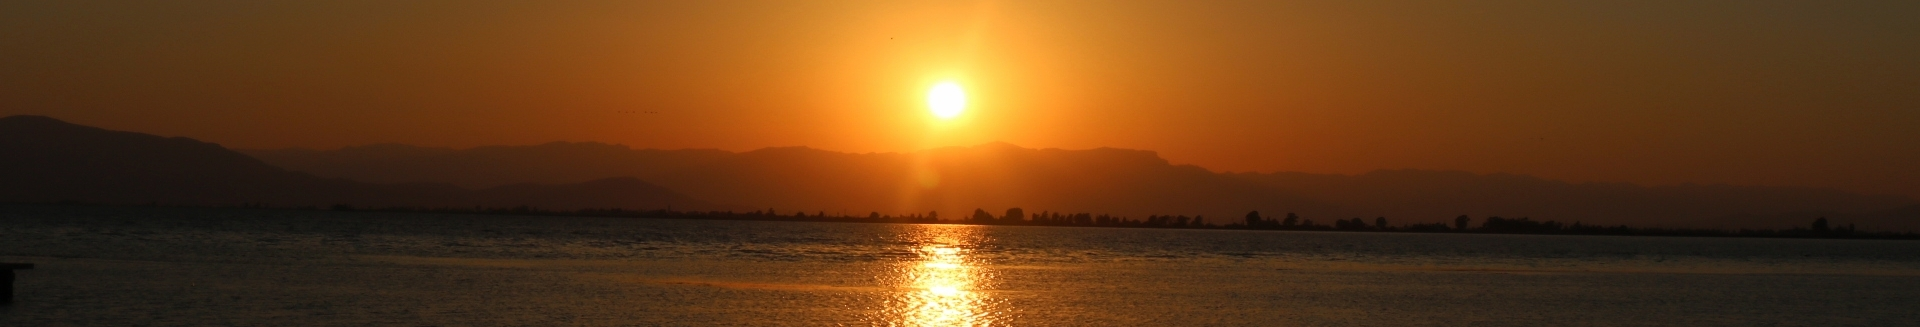 Sunset in the natural park Delta de l'Ebre in Spain.